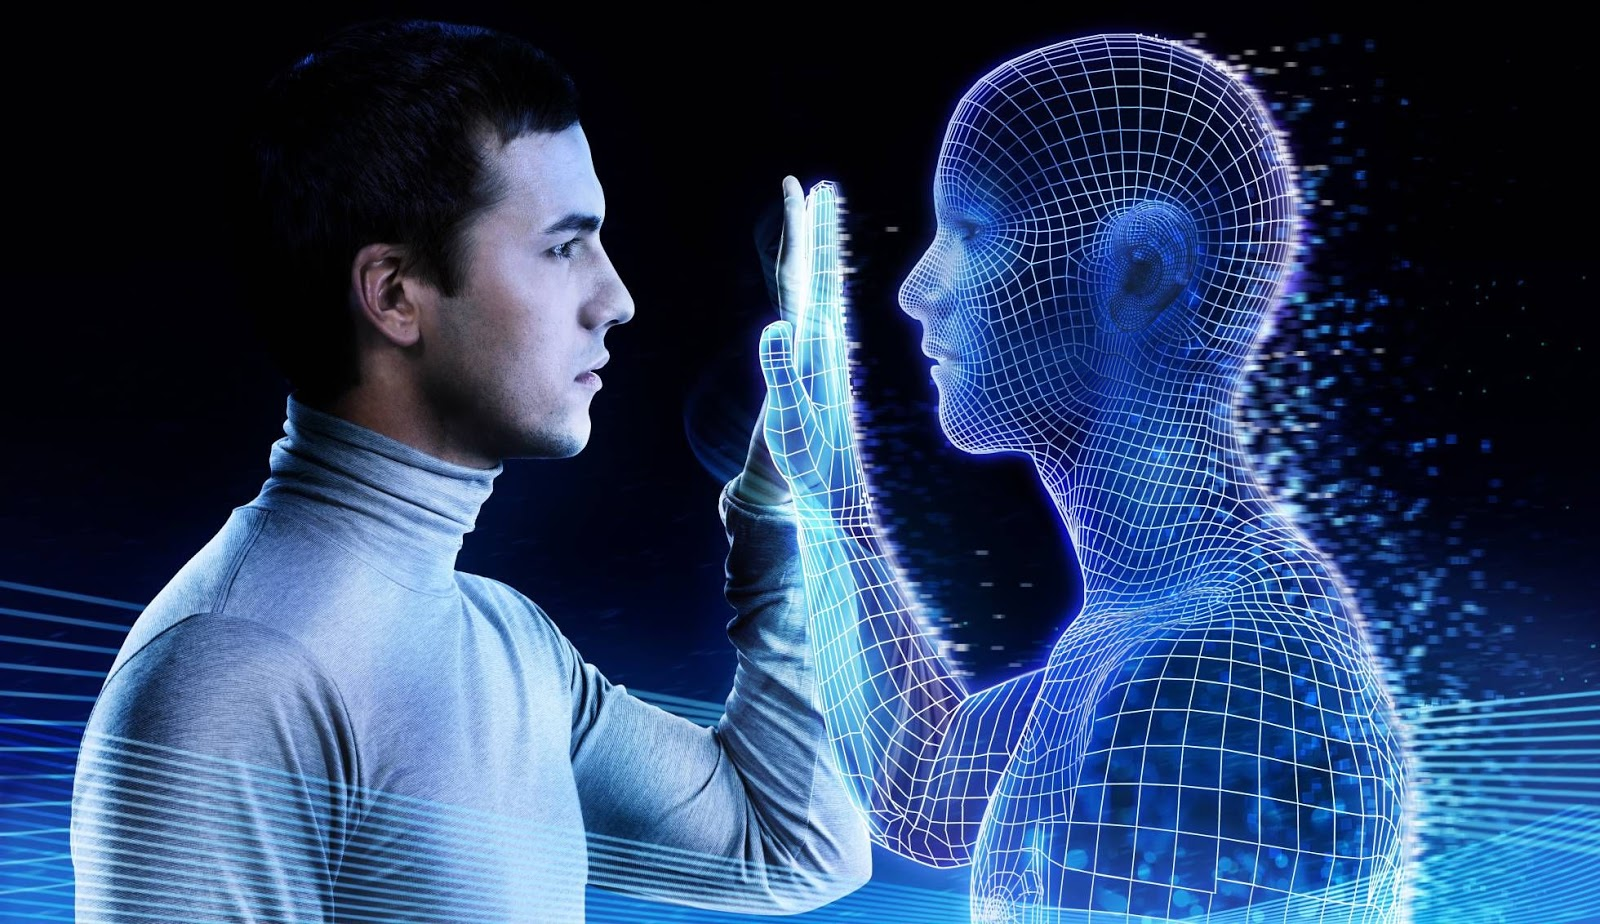 Mind Uploading Into The Computer - 2045